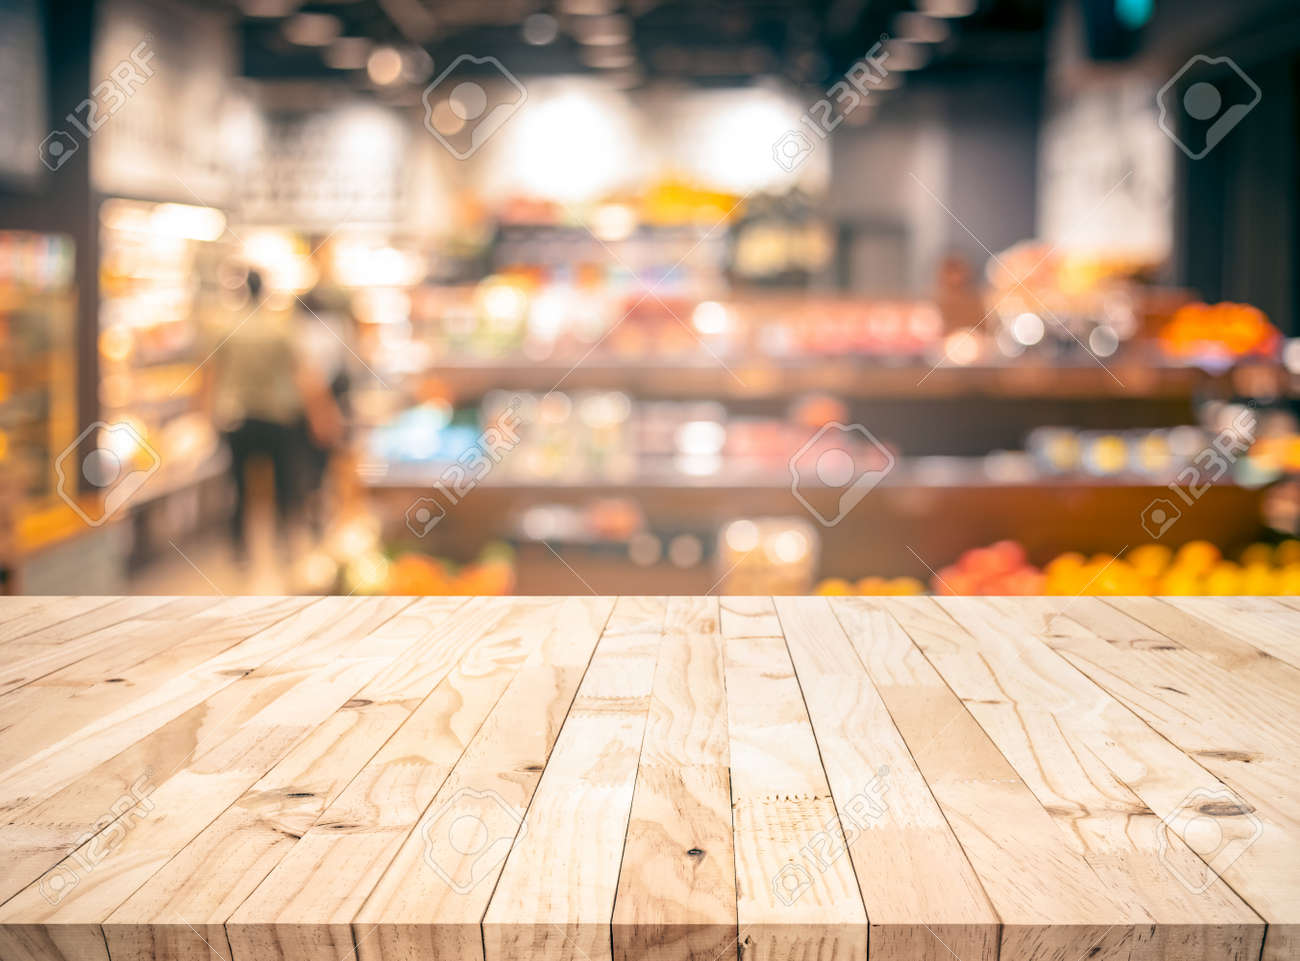 Wood texture table top (counter bar) with blur grocery,market store background.For montage product display or design key visual layout - 137972660